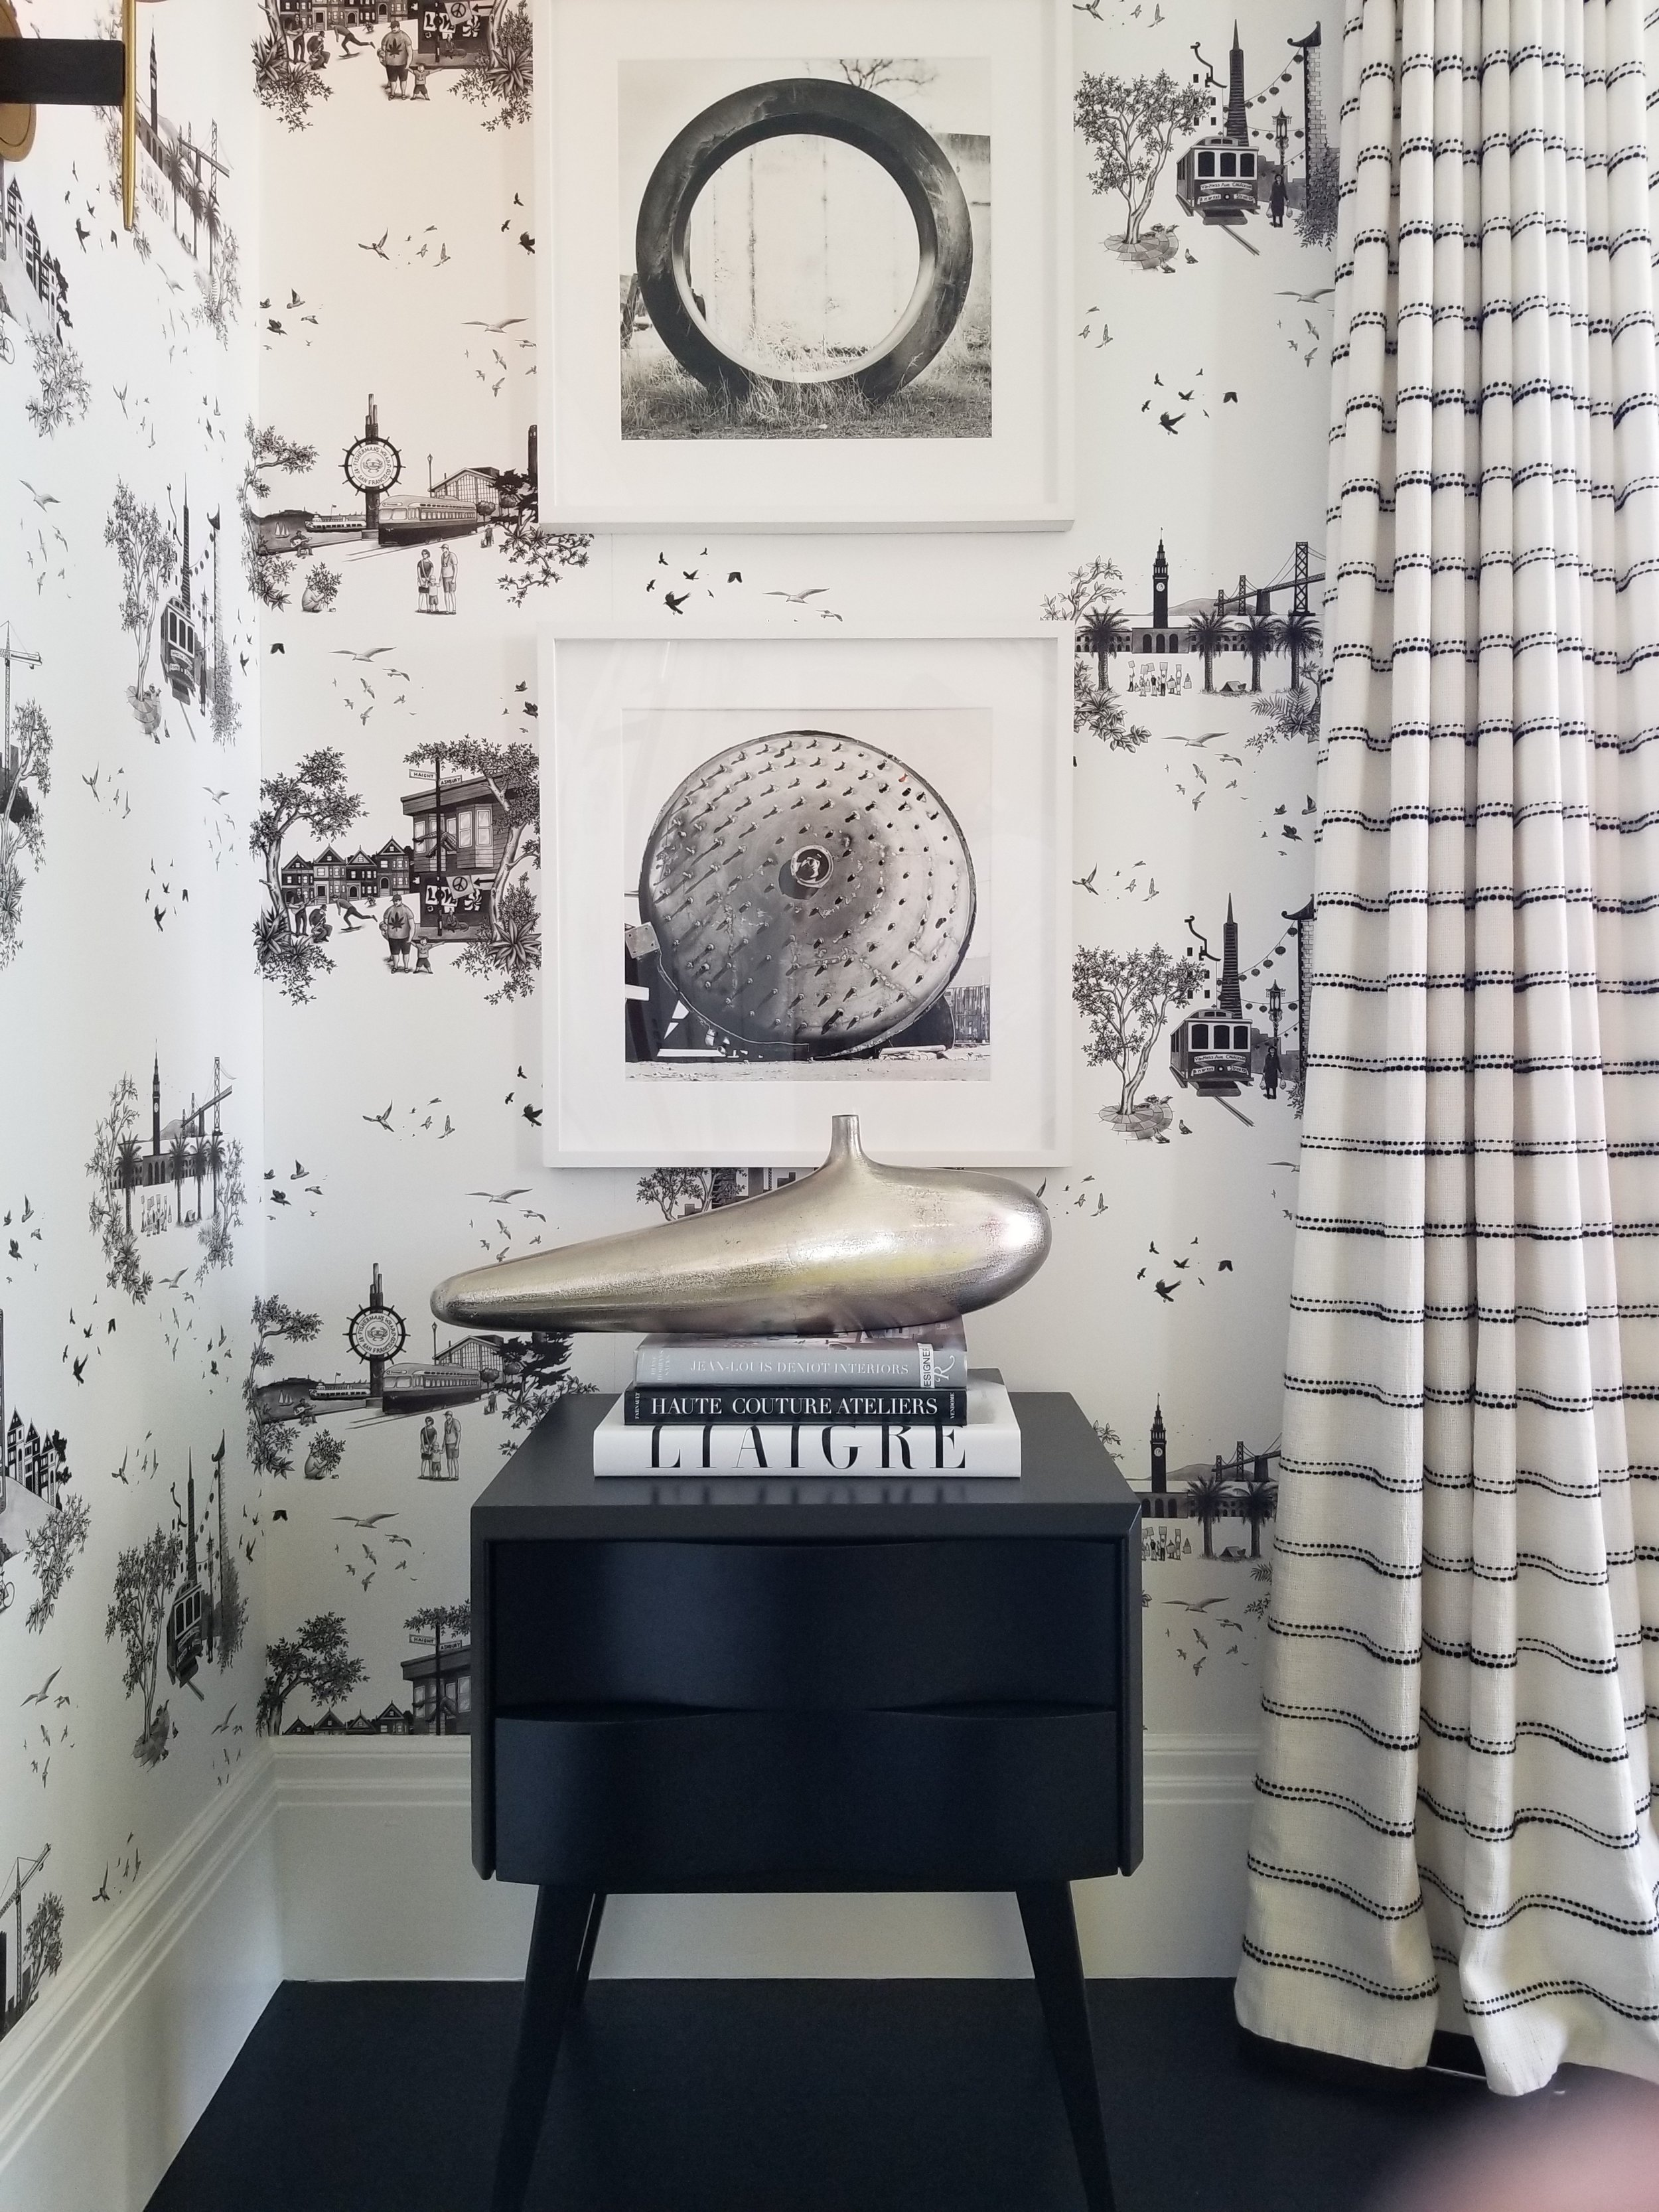 The wallpaper is a whimsical take on toile wallpaper.